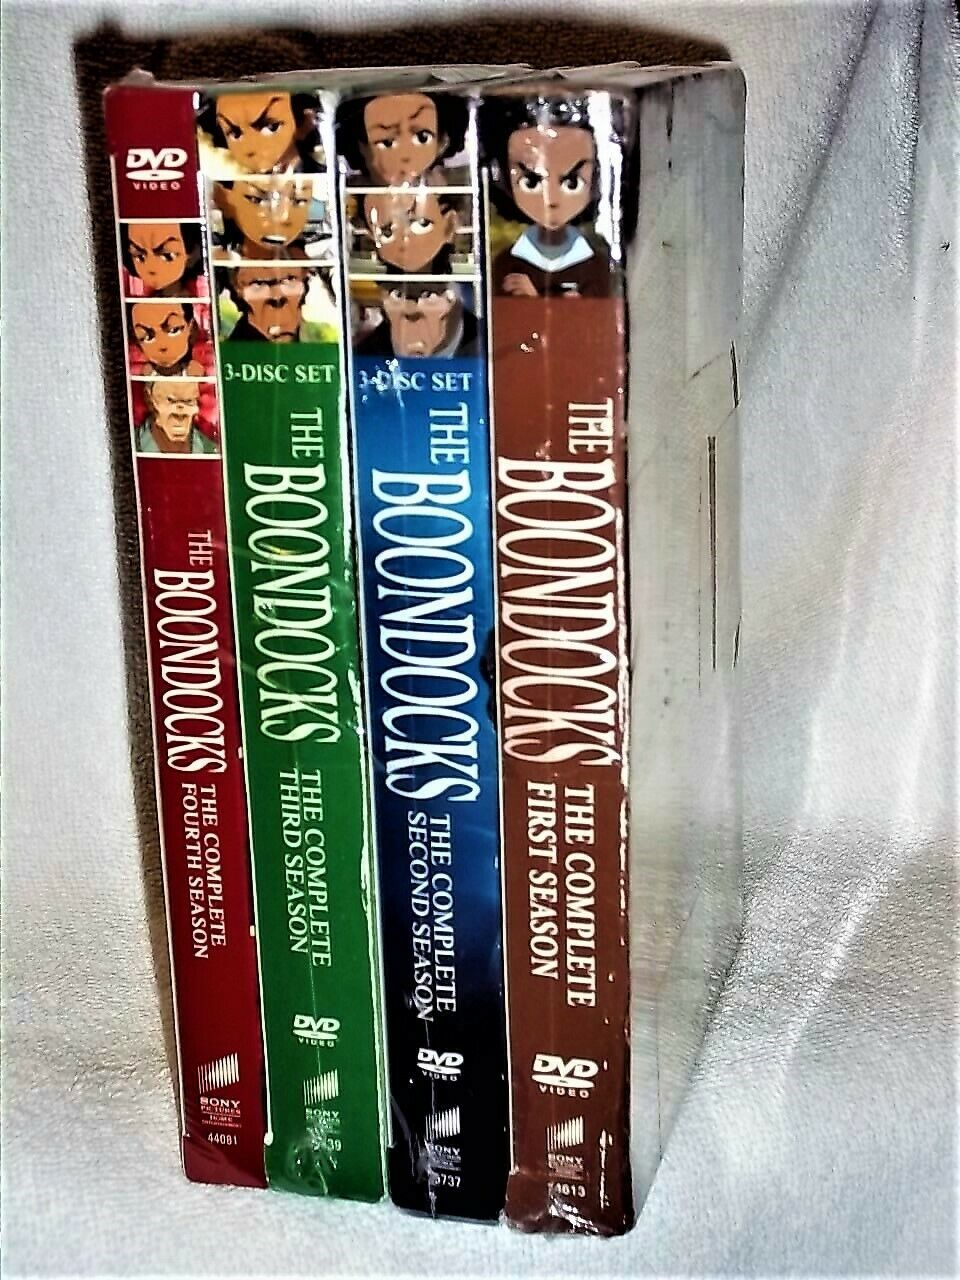 The Boondocks Uncensored Complete Series (DVD Sets) TV Show [New]